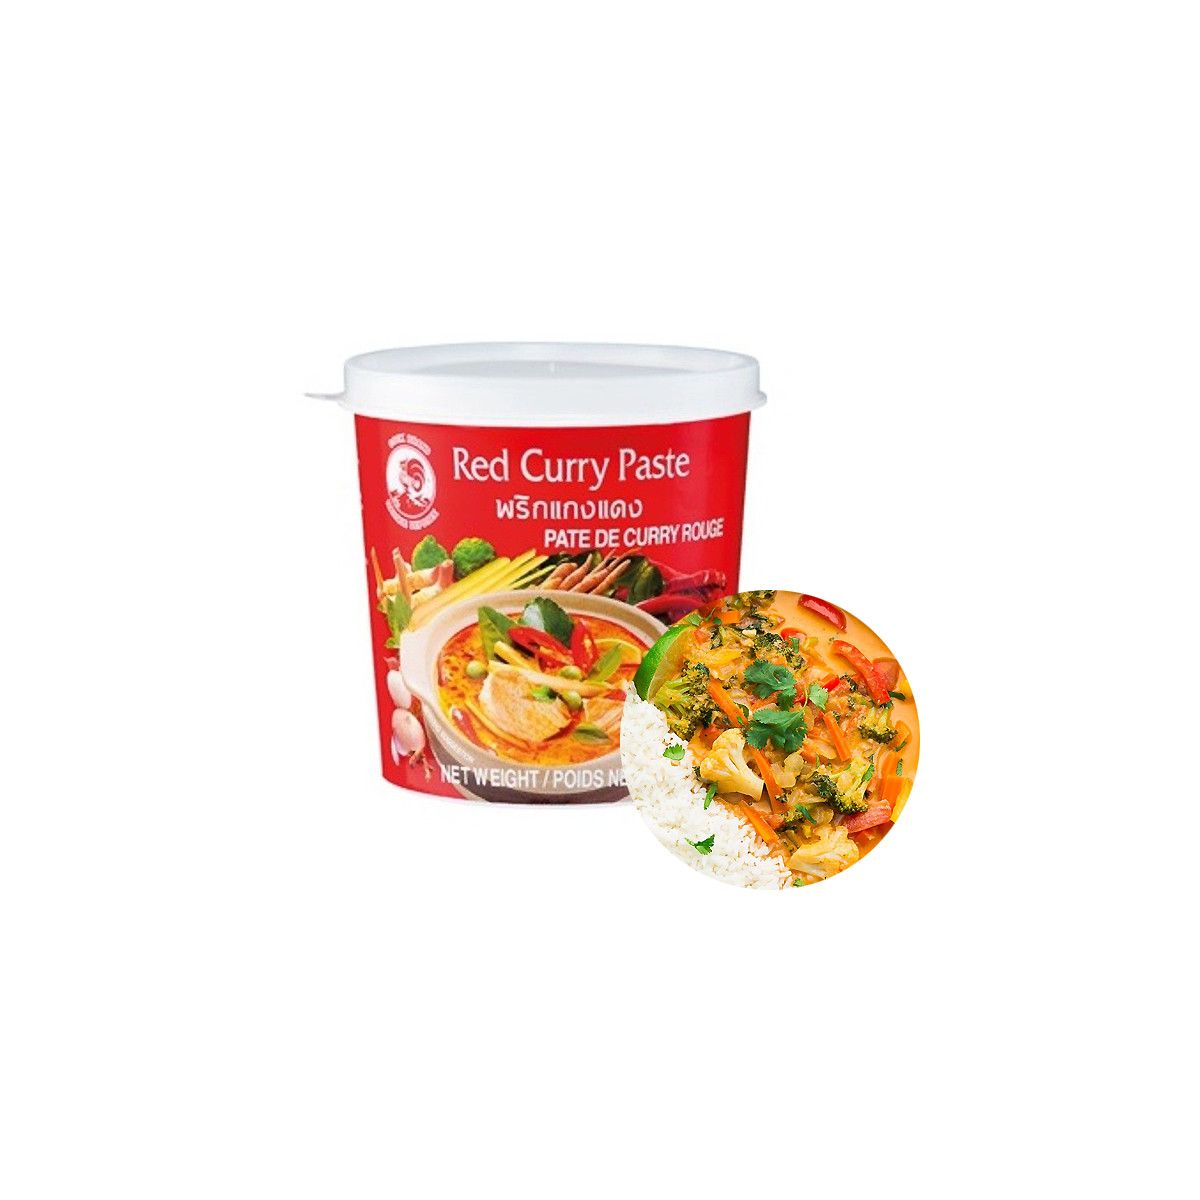 COCK COCK COCK Currypaste Rot 1kg 1